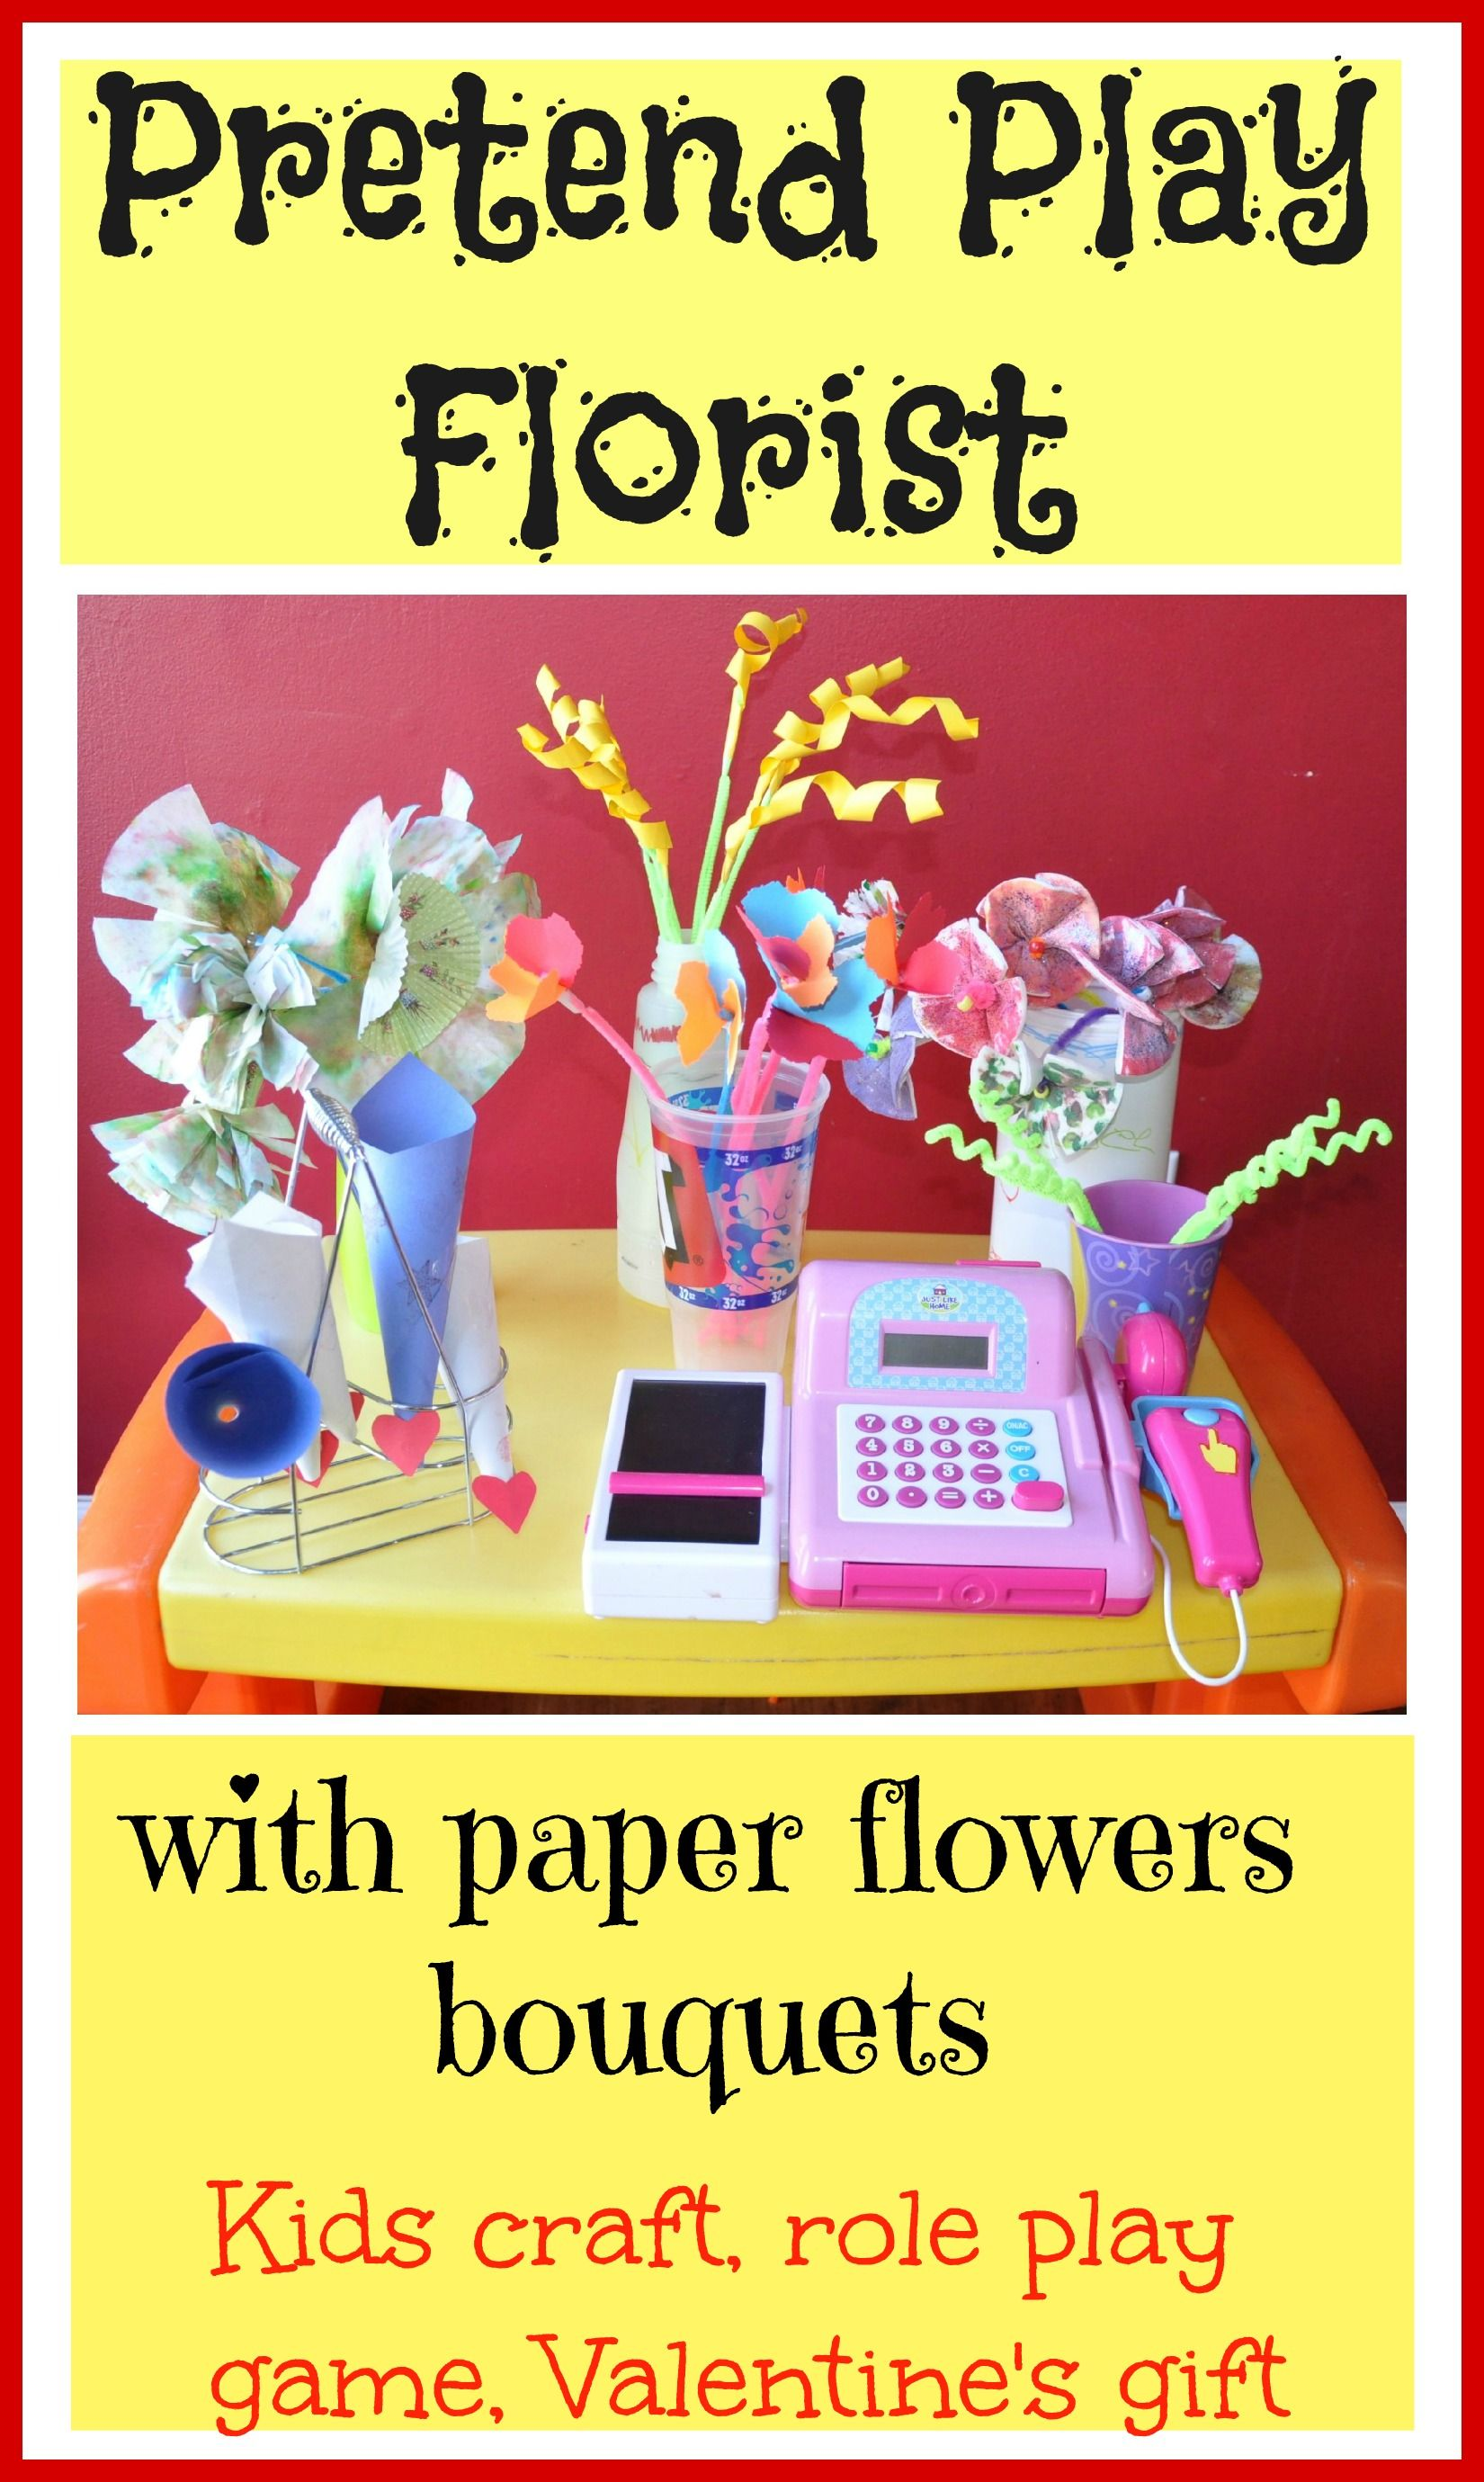 Craft paper flowers first role play as a florist next tons of craft paper flowers first role play as a florist next tons of potential in this activity also the paper flowers bouquets could make great valentines day mightylinksfo